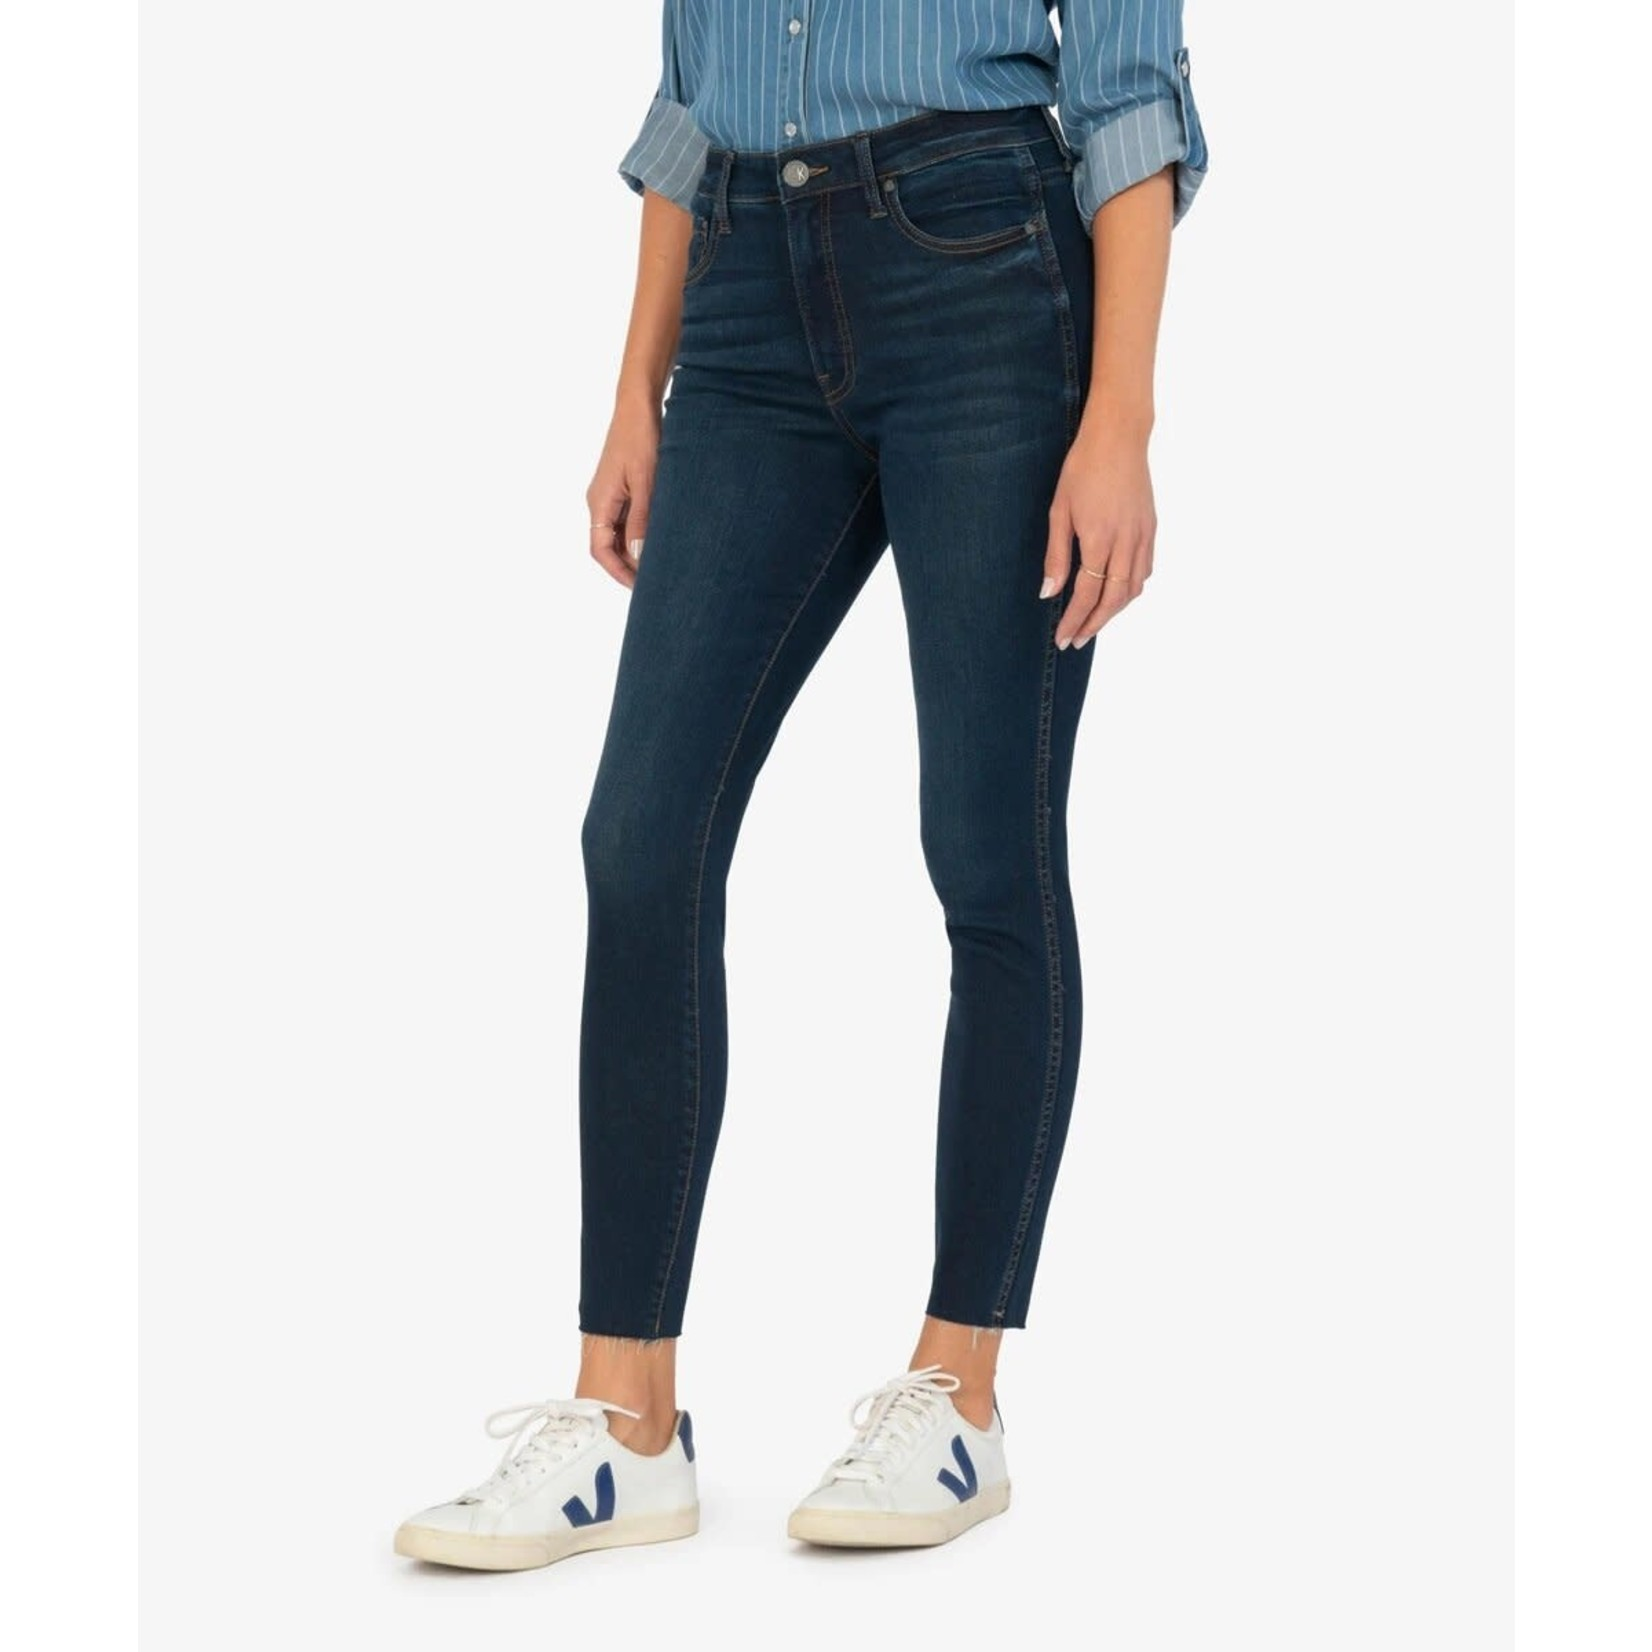 Kut From The Kloth Connie High Rise-Fab Angle Raw Hem